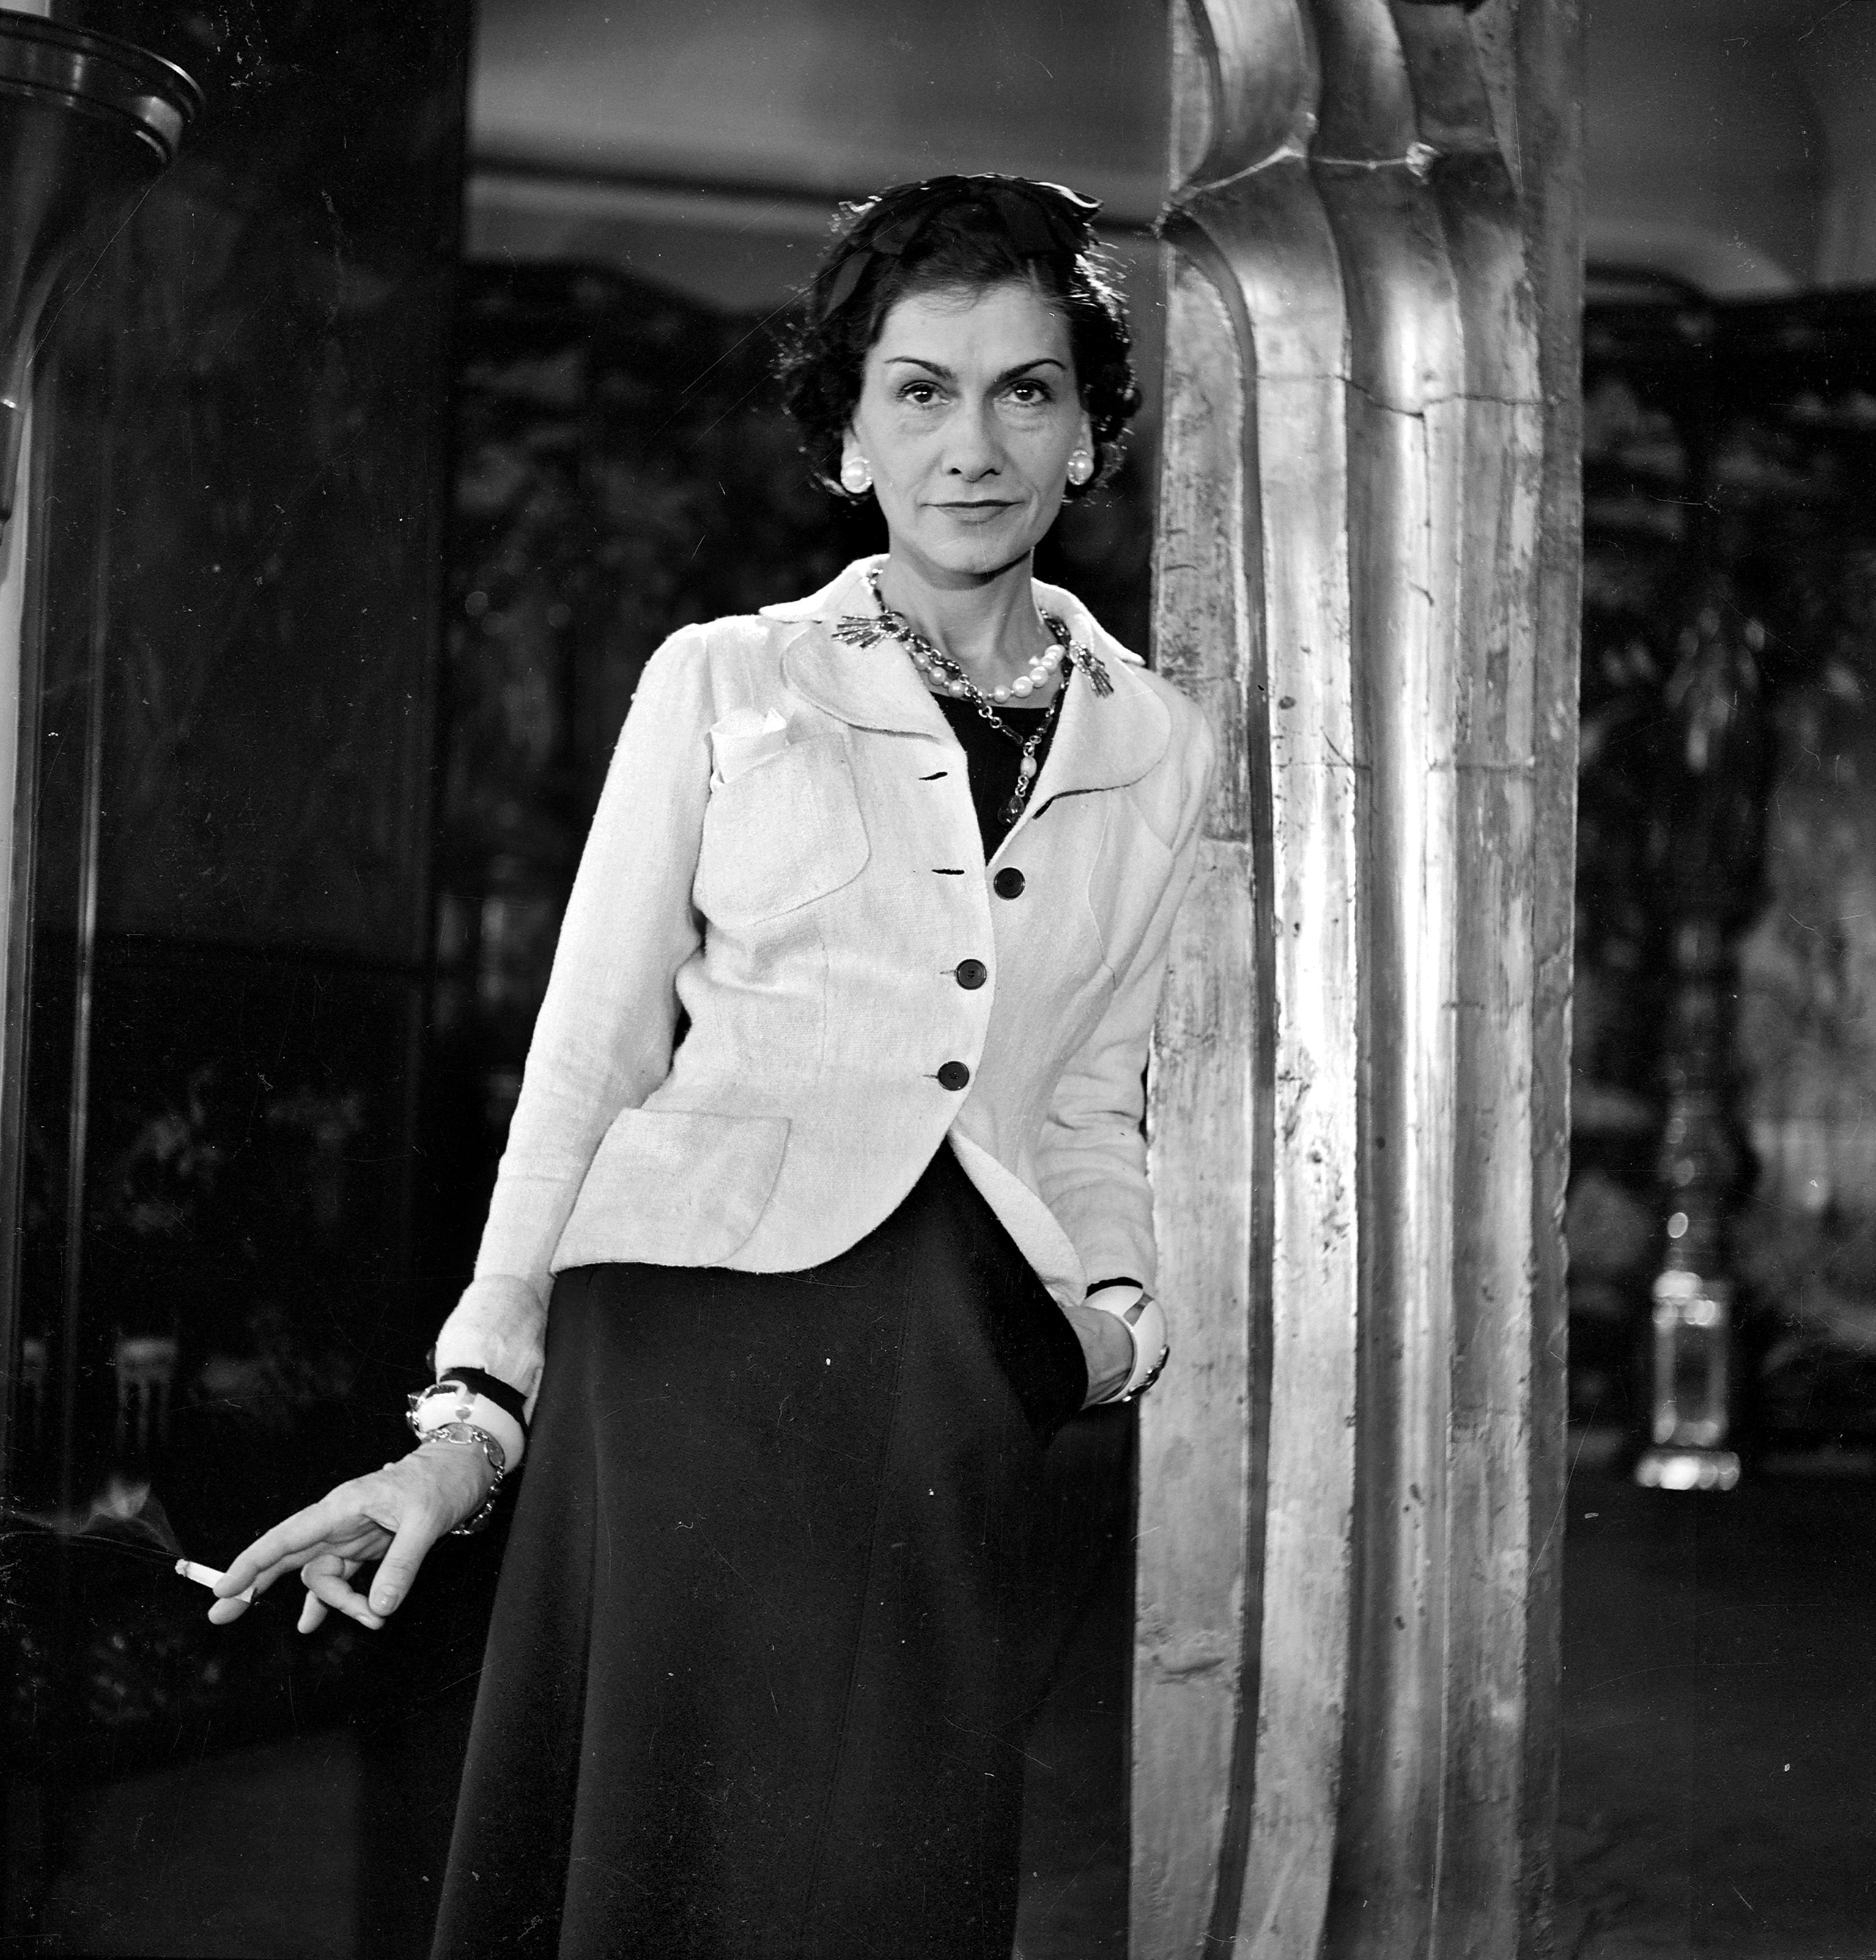 FRANCE - CIRCA 1937:  Coco Chanel, French couturier. Paris, 1937.  (Photo by Lipnitzki/Roger Viollet/Getty Images)